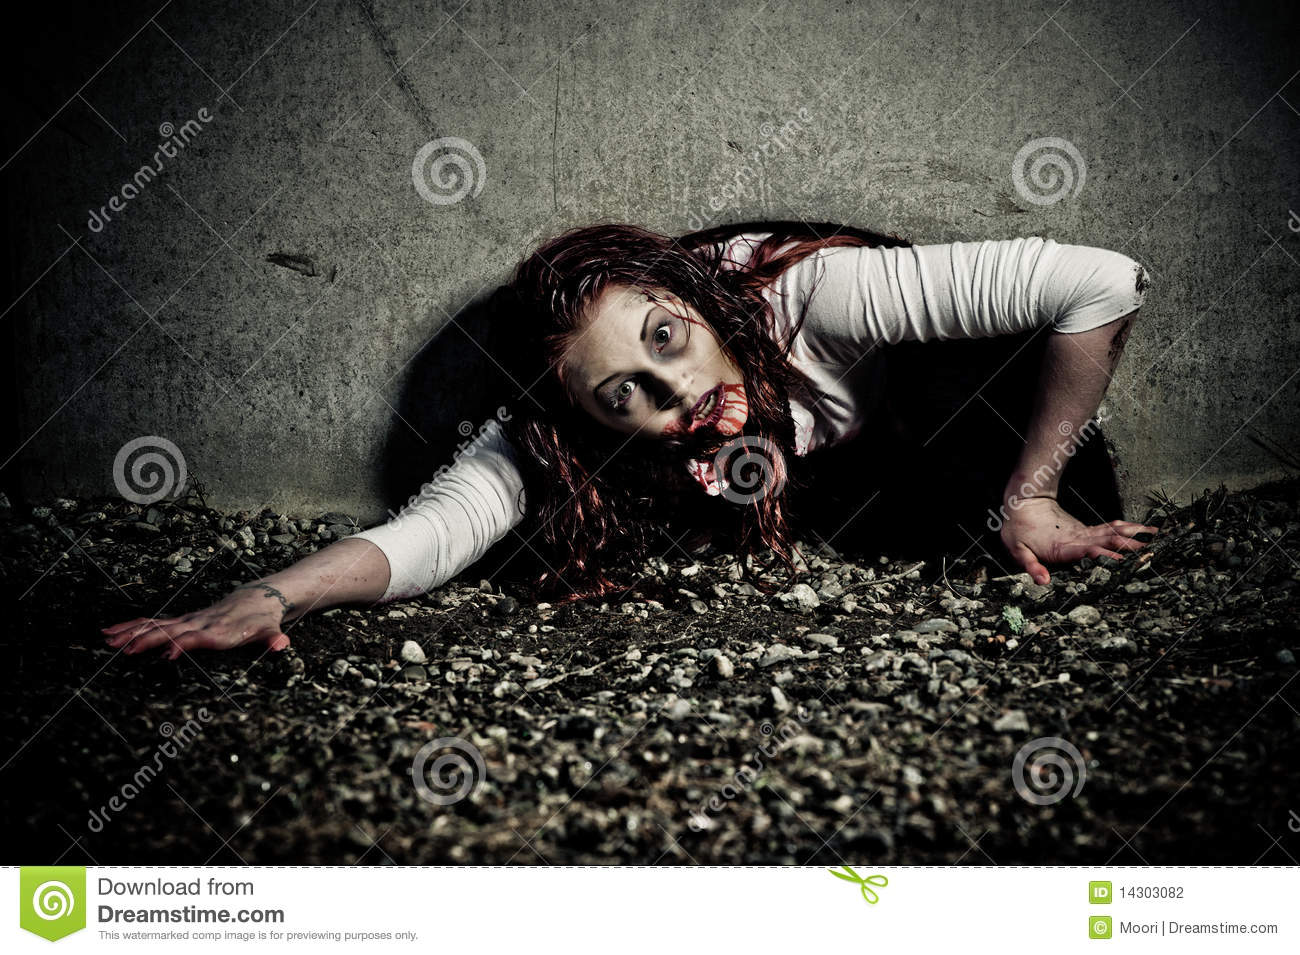 Zombie girl stock photography image 14303082 for Mirror zombie girl